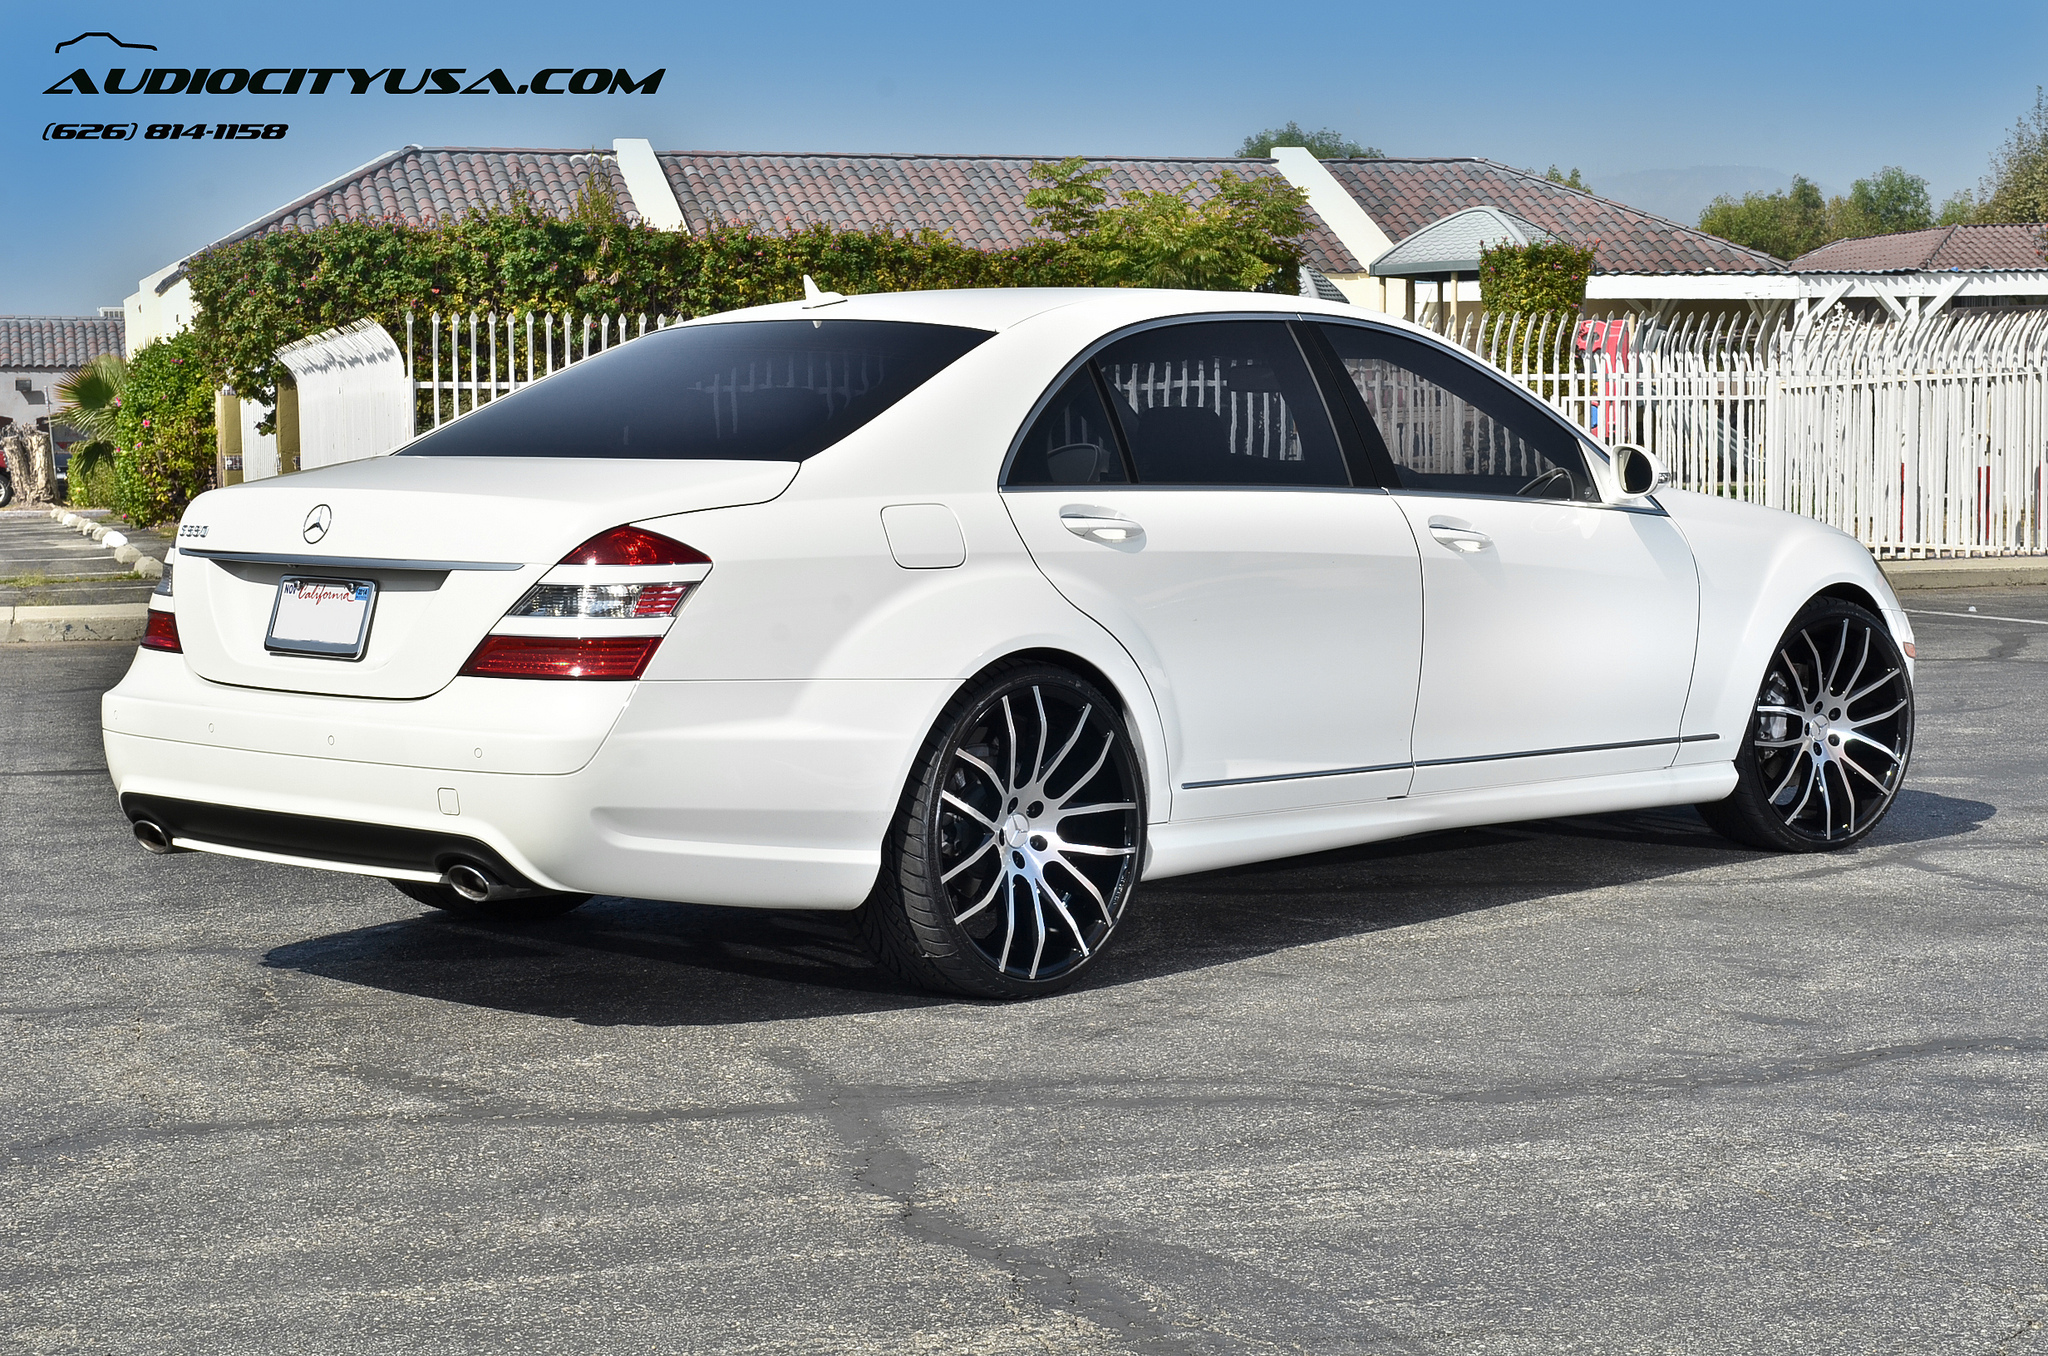 Giovanna Kilis r22 Machined Black on White Mercedes Benz S550